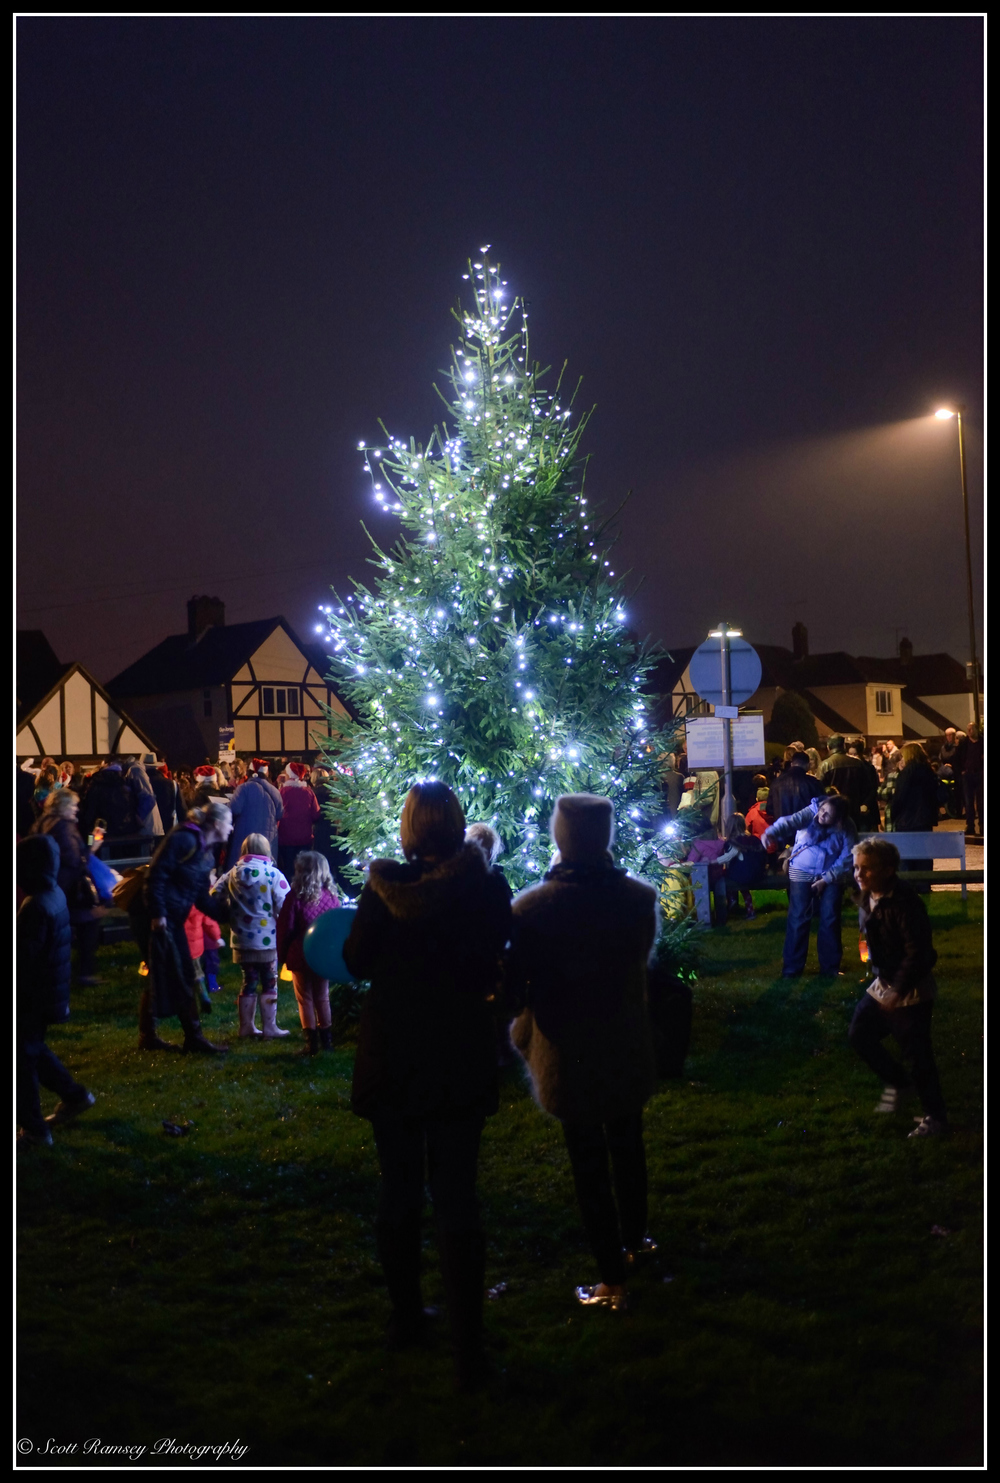 The East Preston Christmas lights switch on 2014. Local residents in the West Sussex village watch as the Christmas tree lights are turned on during the event.